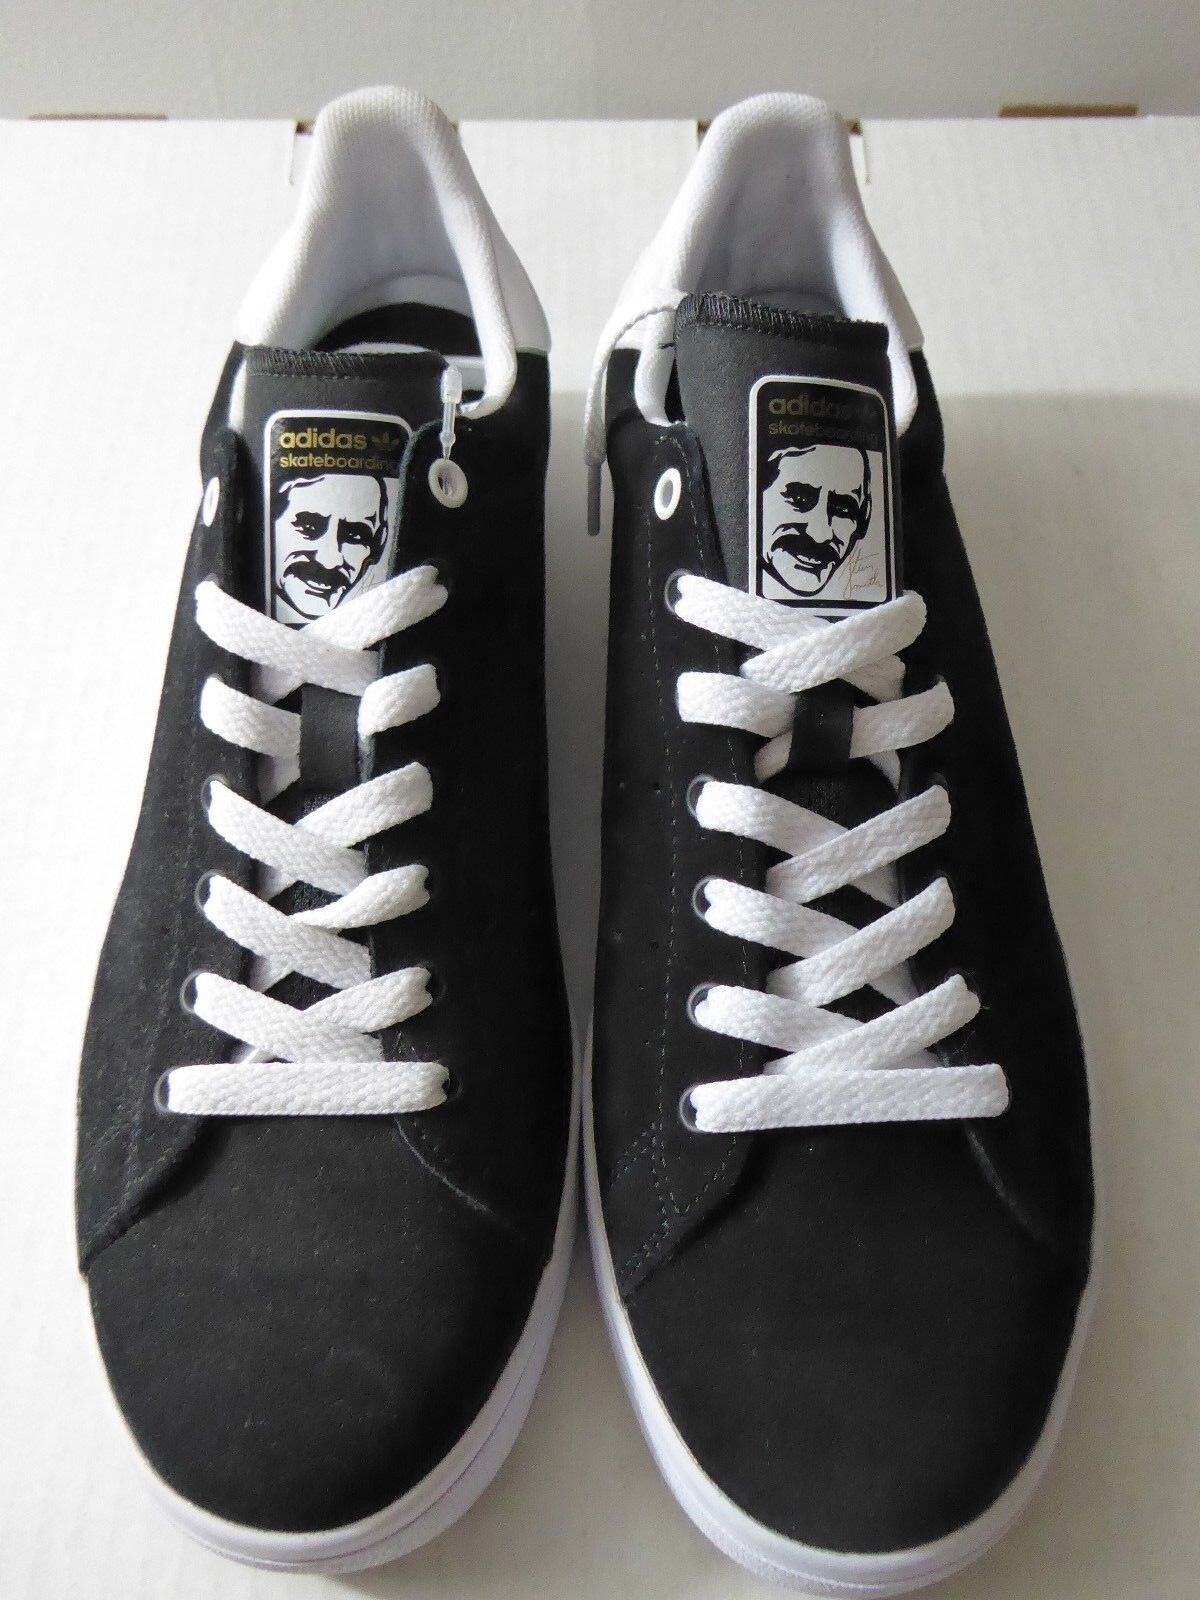 low priced b41b2 98390 adidas Stan Smith Vulc Skateboarding Black White Bb8743 Size 8 for ...